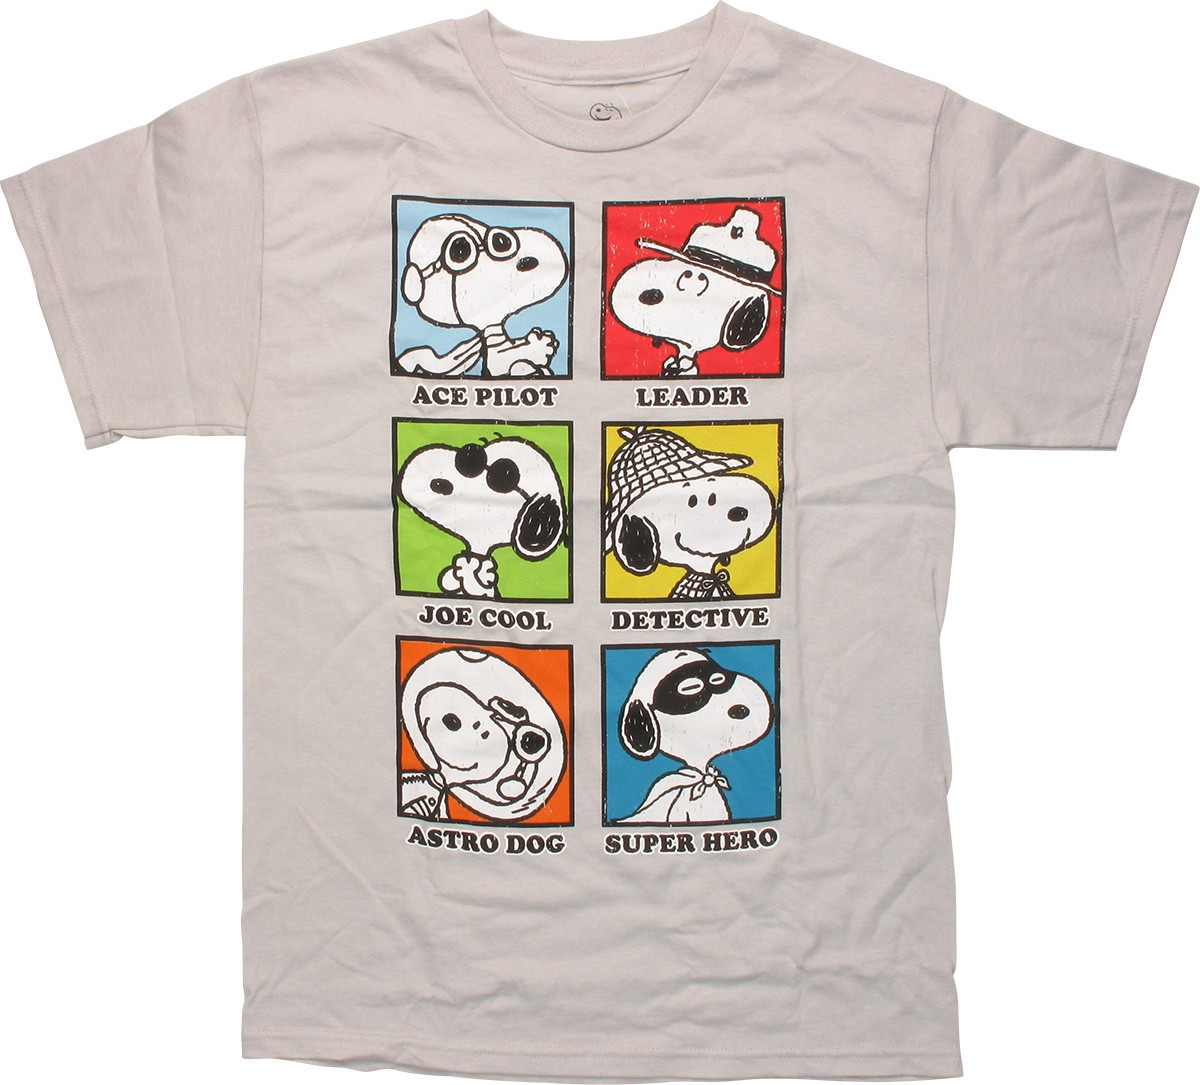 peanuts snoopy career squares t shirt. Black Bedroom Furniture Sets. Home Design Ideas